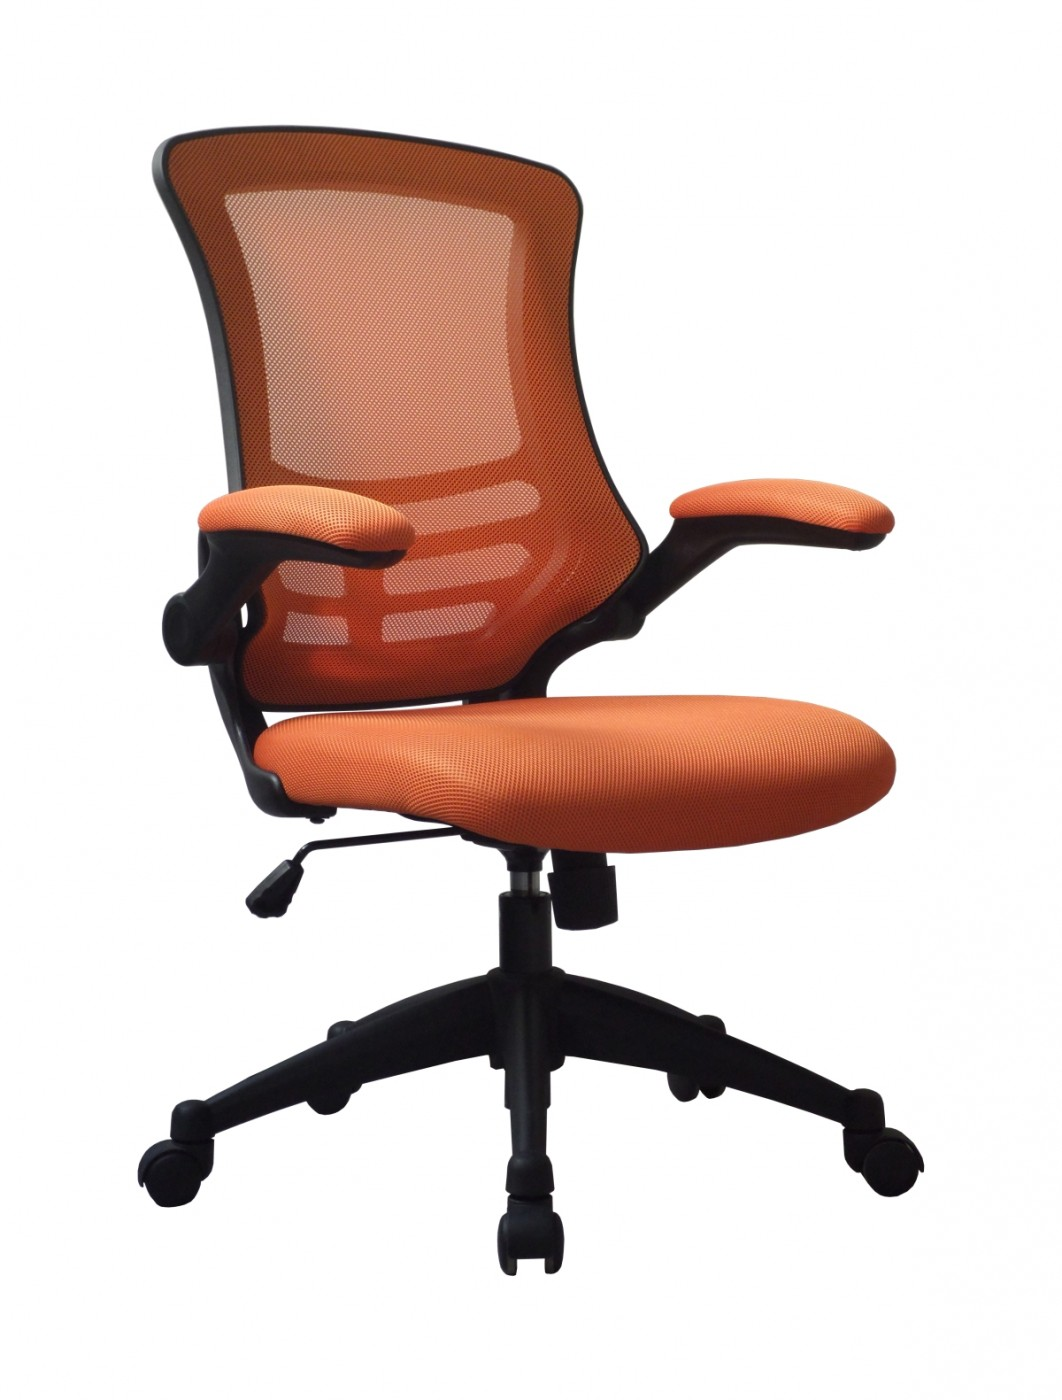 eliza tinsley luna mesh office chair bcml1302 enlarged view